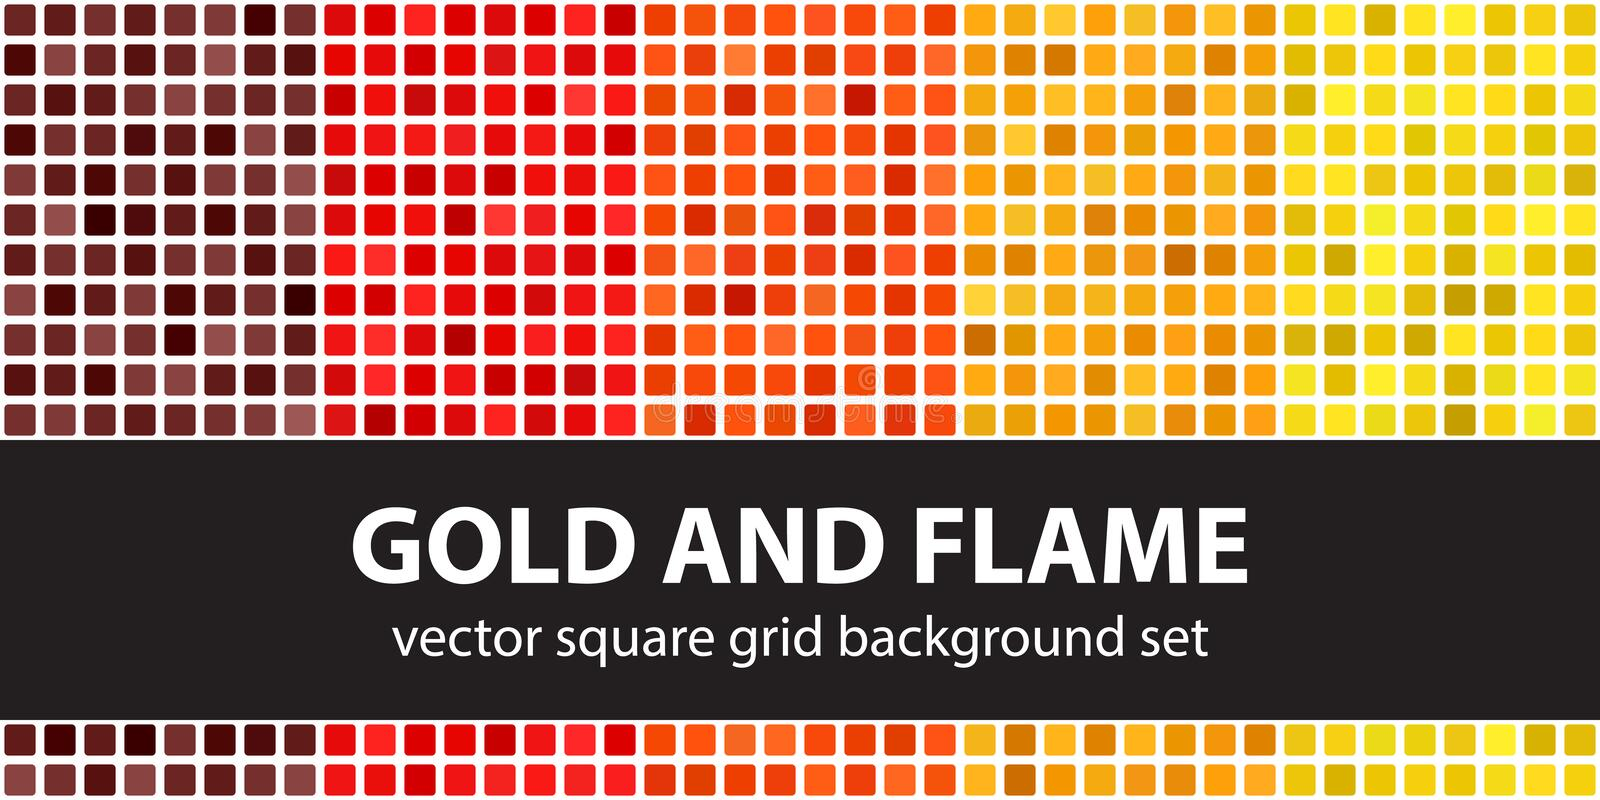 Square pattern set Gold and Flame. Vector seamless tile backgrounds. Maroon, red, orange, gold, yellow rounded squares on white backdrops vector illustration